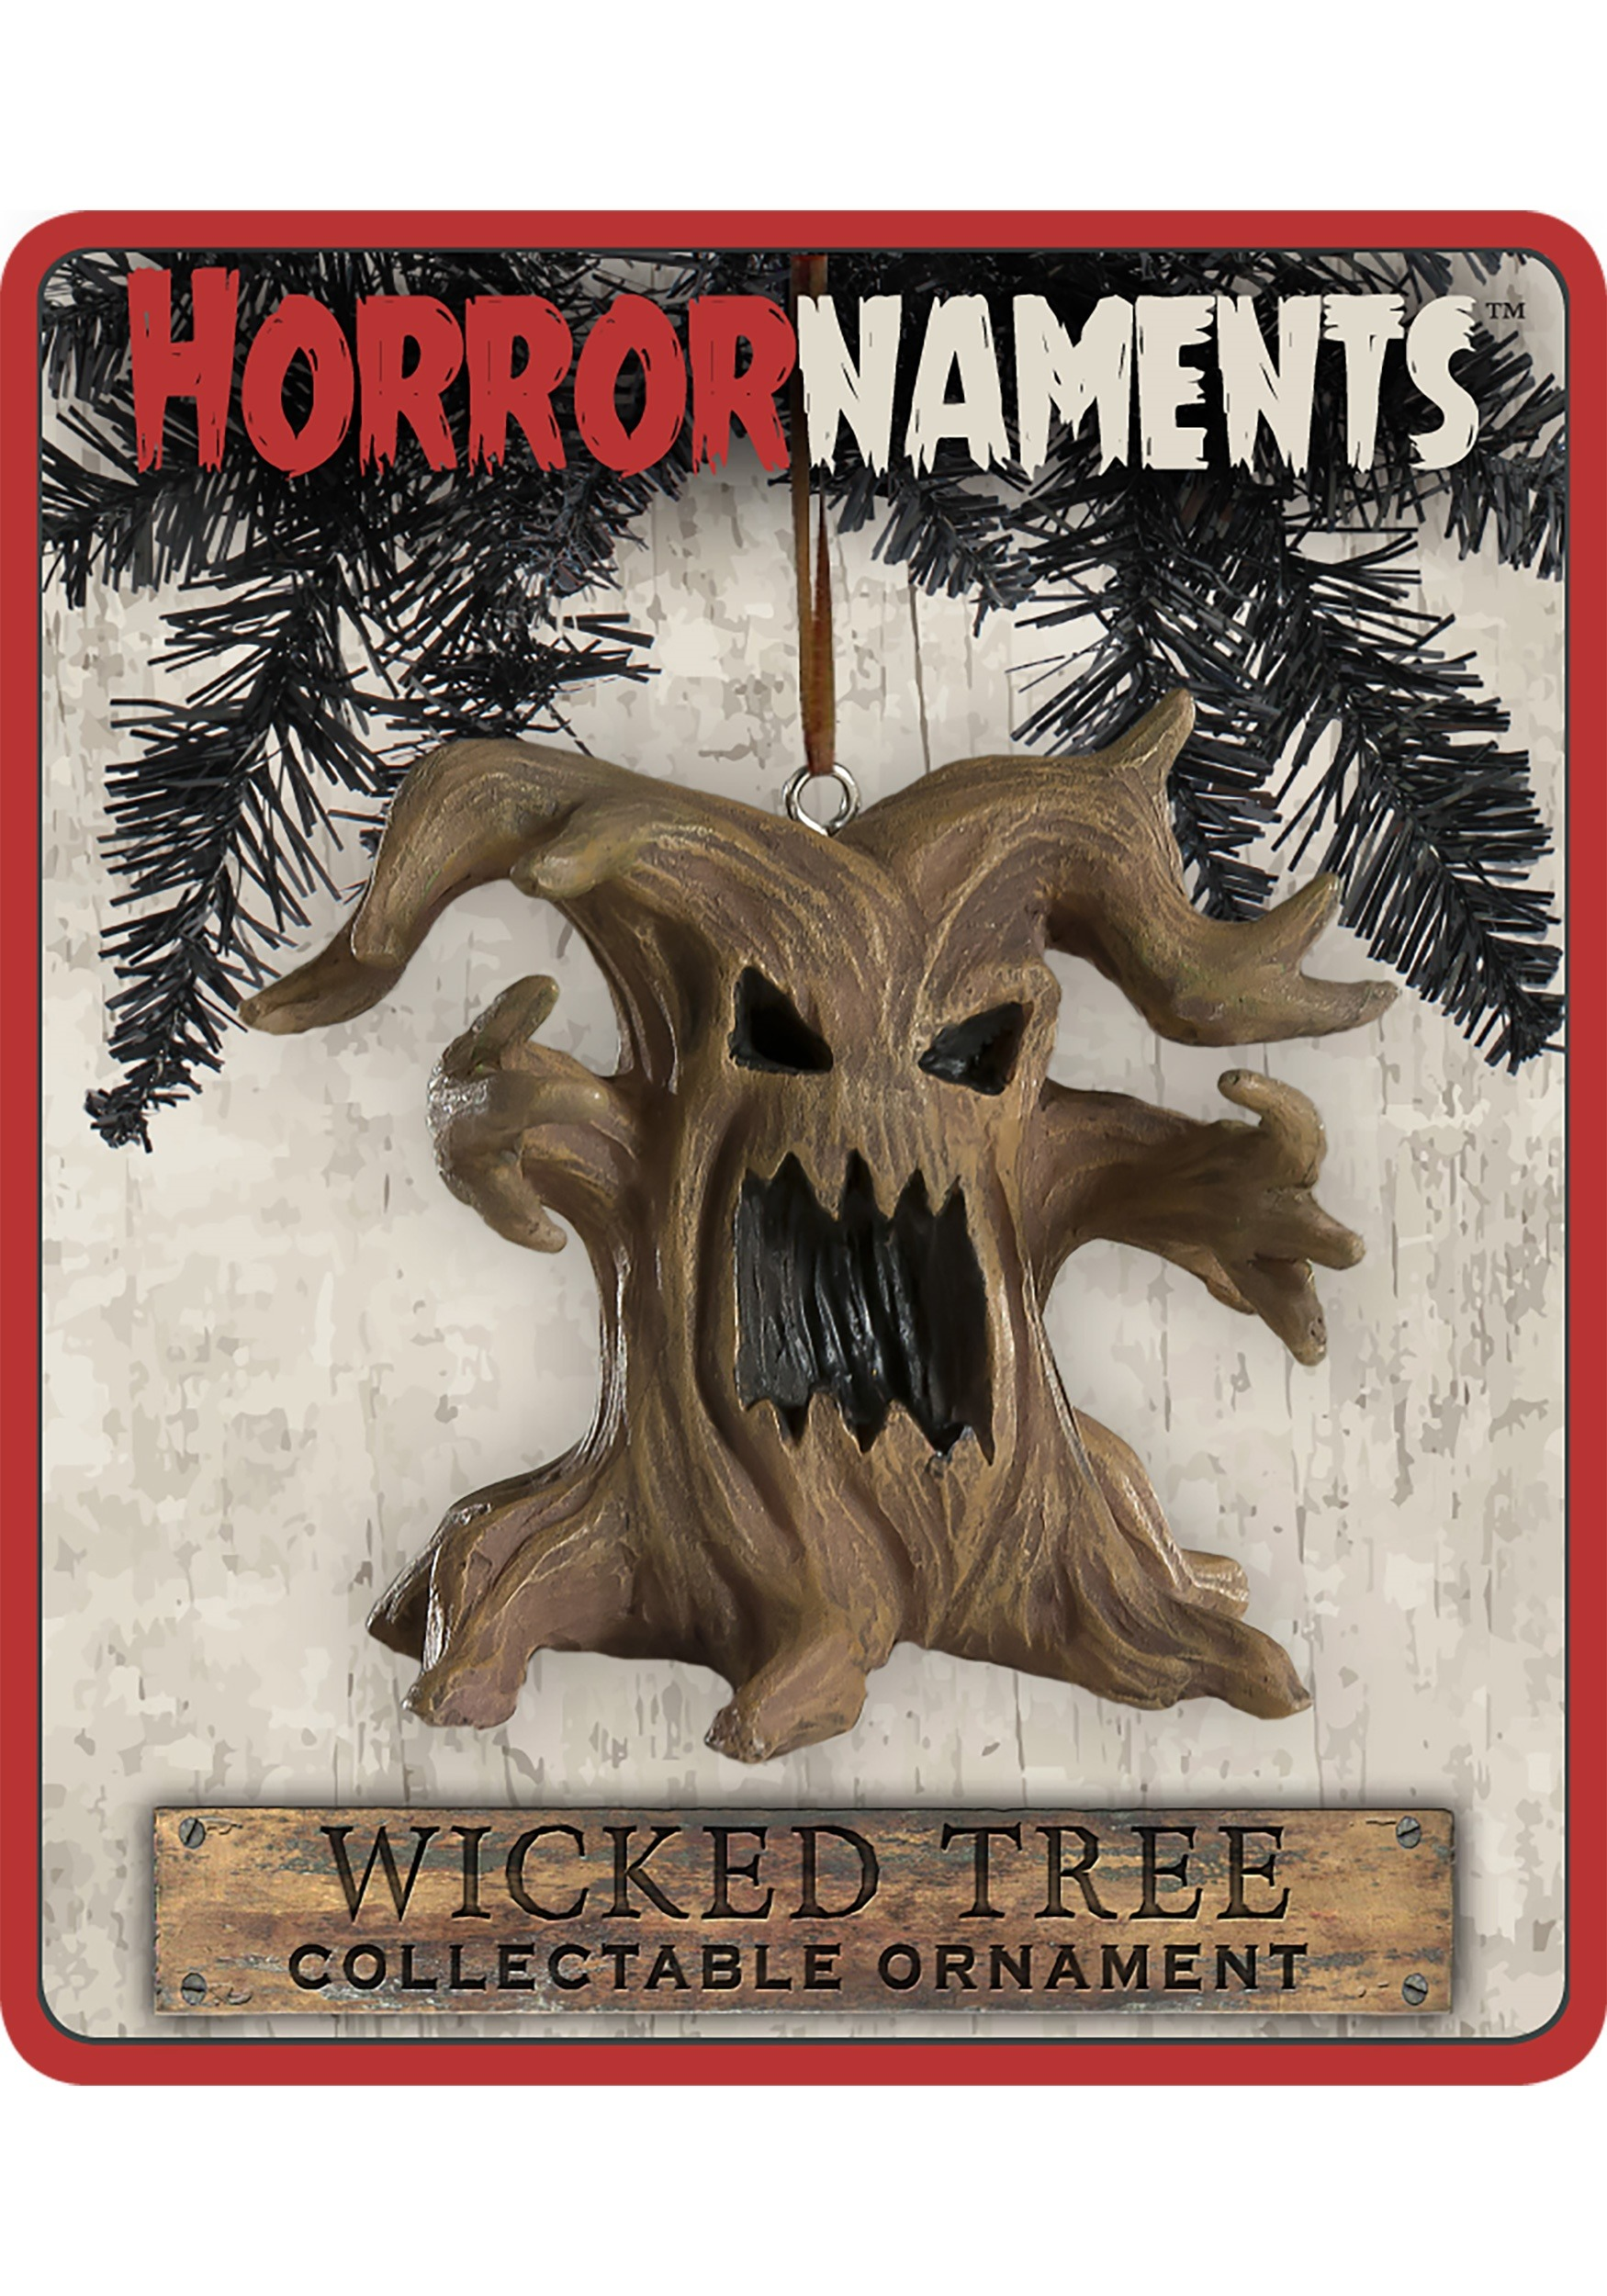 Wicked Tree Horrornaments Molded Ornament